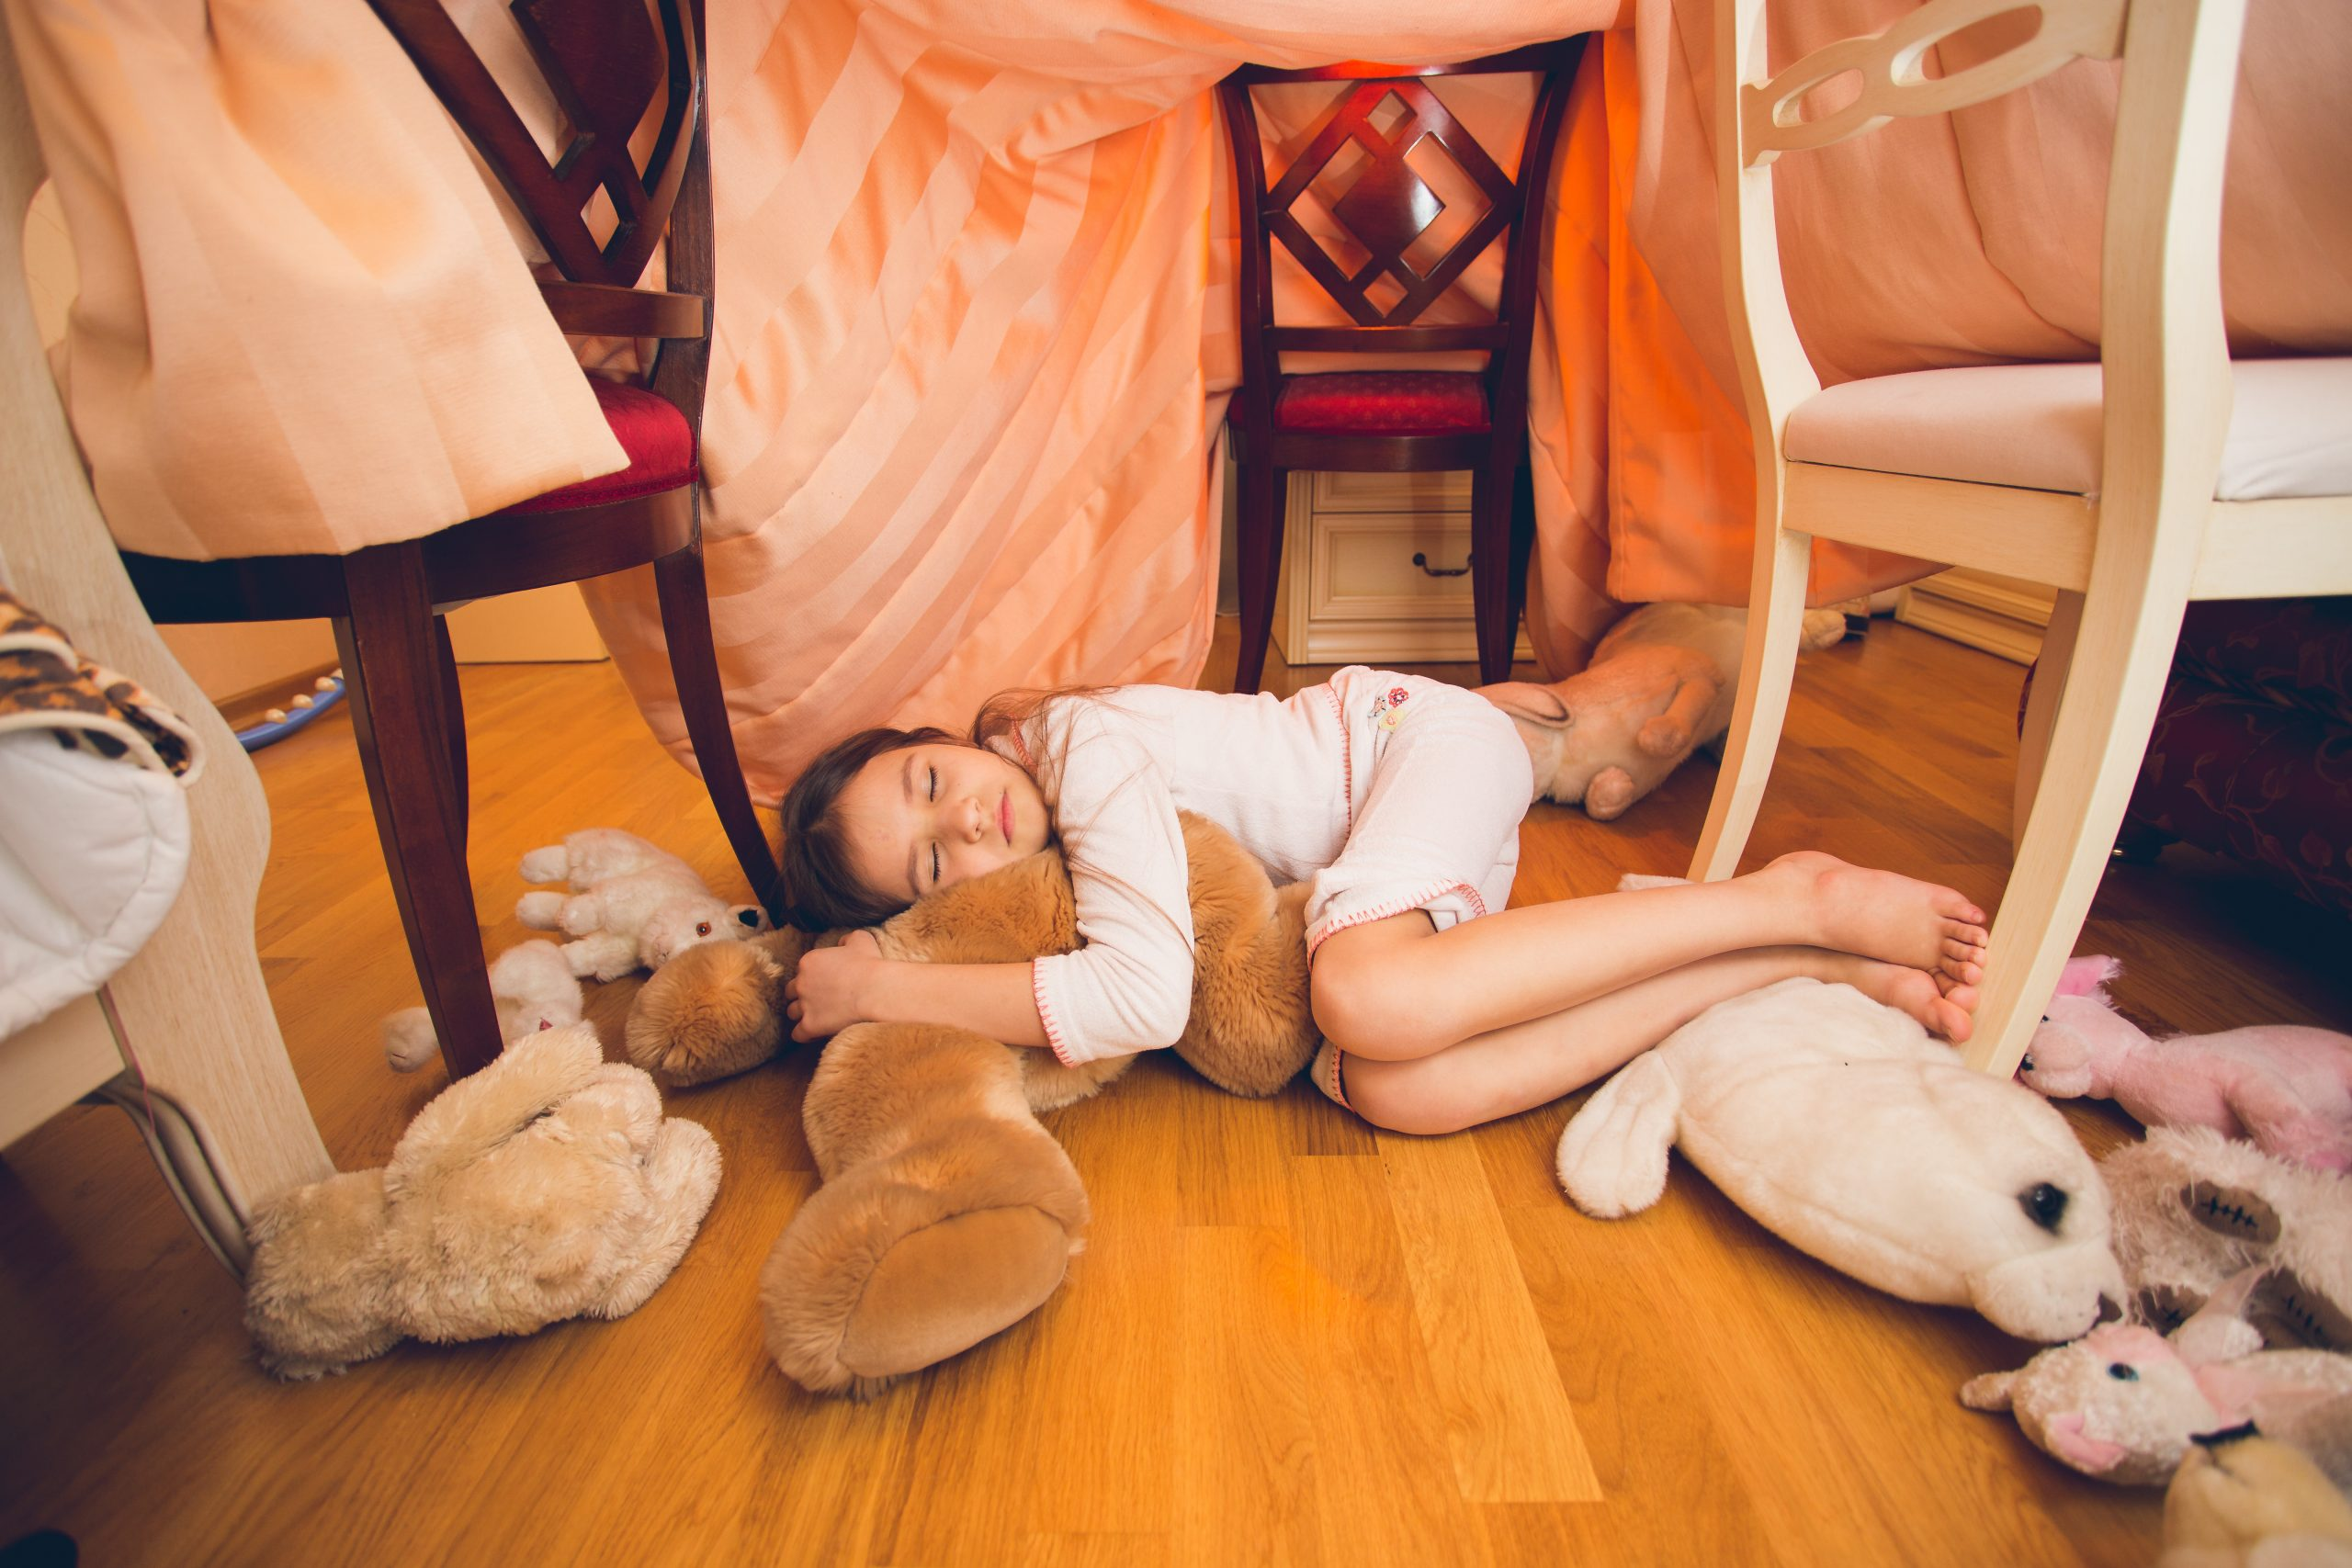 Is Sleeping on the Floor Good or Bad for Your Health?